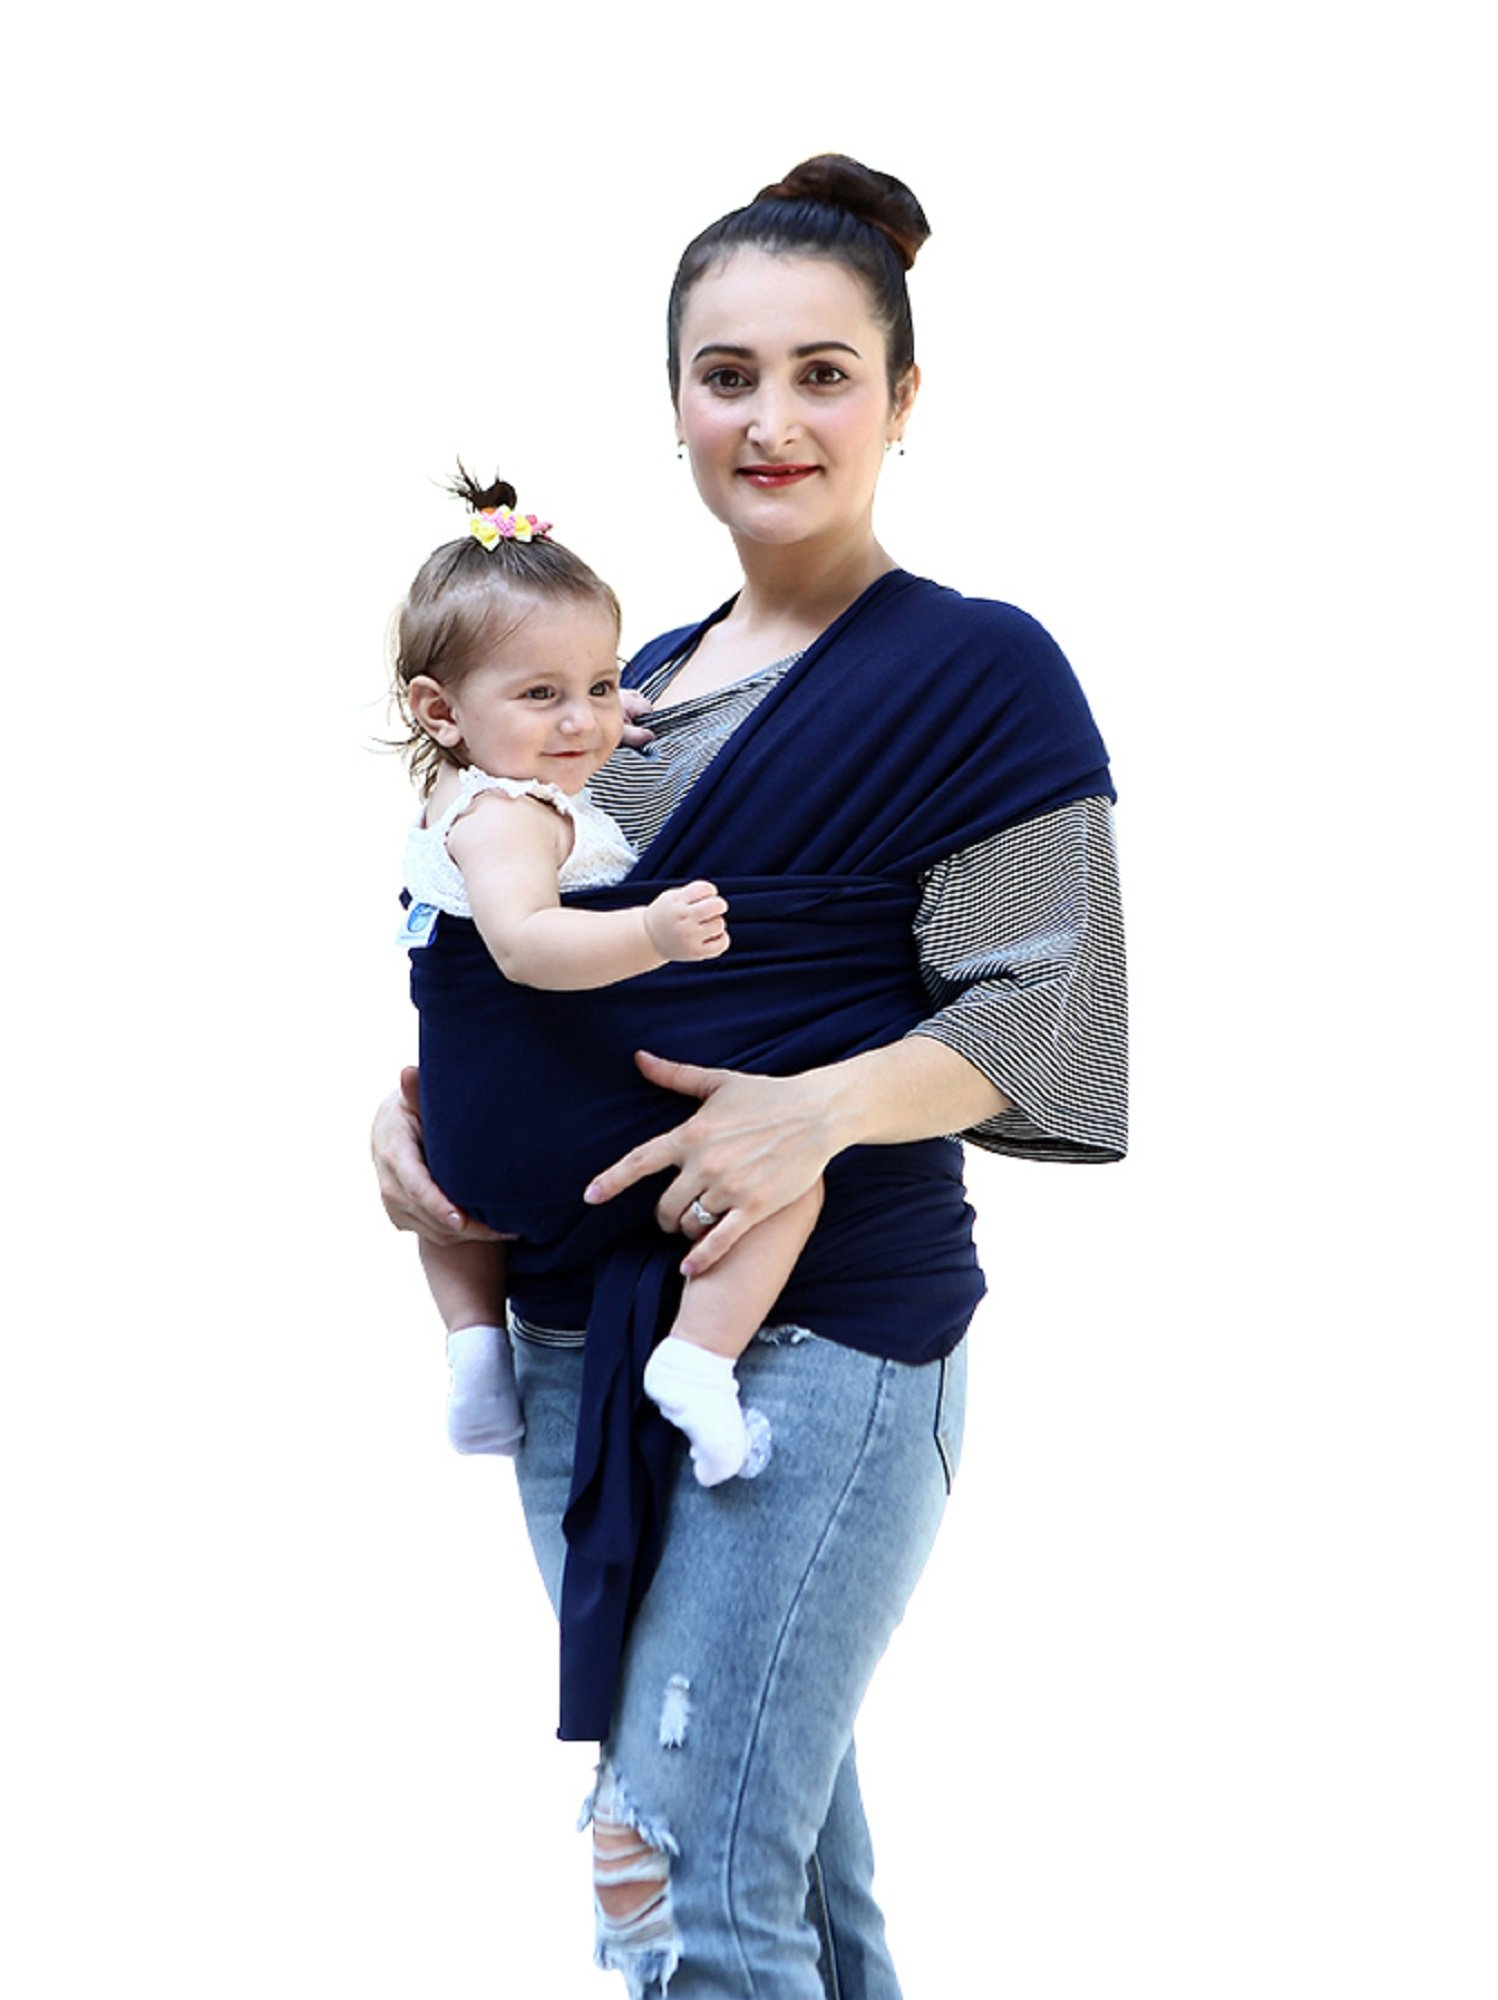 "Baby Wrap Carrier for Newborns, Infants & Toddlers Premium Soft Cotton Baby Sling Carrier for babies up to 44lbs/20kg, Safety Comfortable Functional Navy Blue DEBAIJIA One Size Fits All - Size is 510*53cm(200*21inch), suitable from new born to 20kg/44lbs. Perfect for newborns, infants and toddlers. Easy to Ware - Our wrap is easy and comfortable to wear and comes with a ""How to Use"" instruction booklet. Hands Free - Do housework, breast feeding, grab a coffee, shopping while keeping baby safe and close. 1"